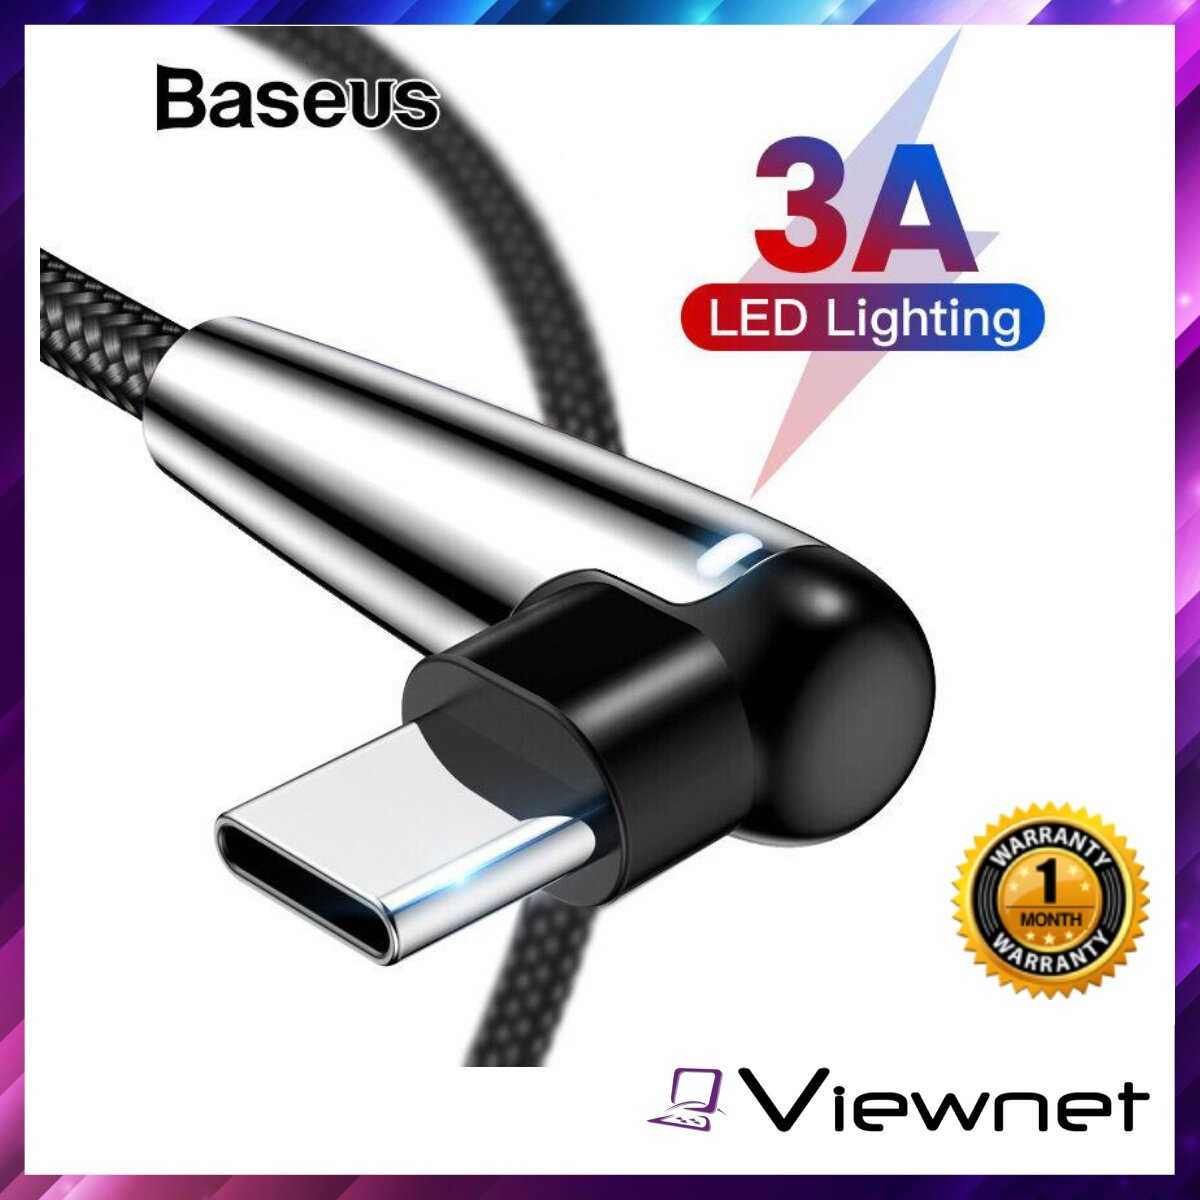 Baseus MVP 1M Type-C Game Cable (CATMVP-D01), 3A Fast Charging, Nylon Braided Wire, 480 Mbps Transmission Speed